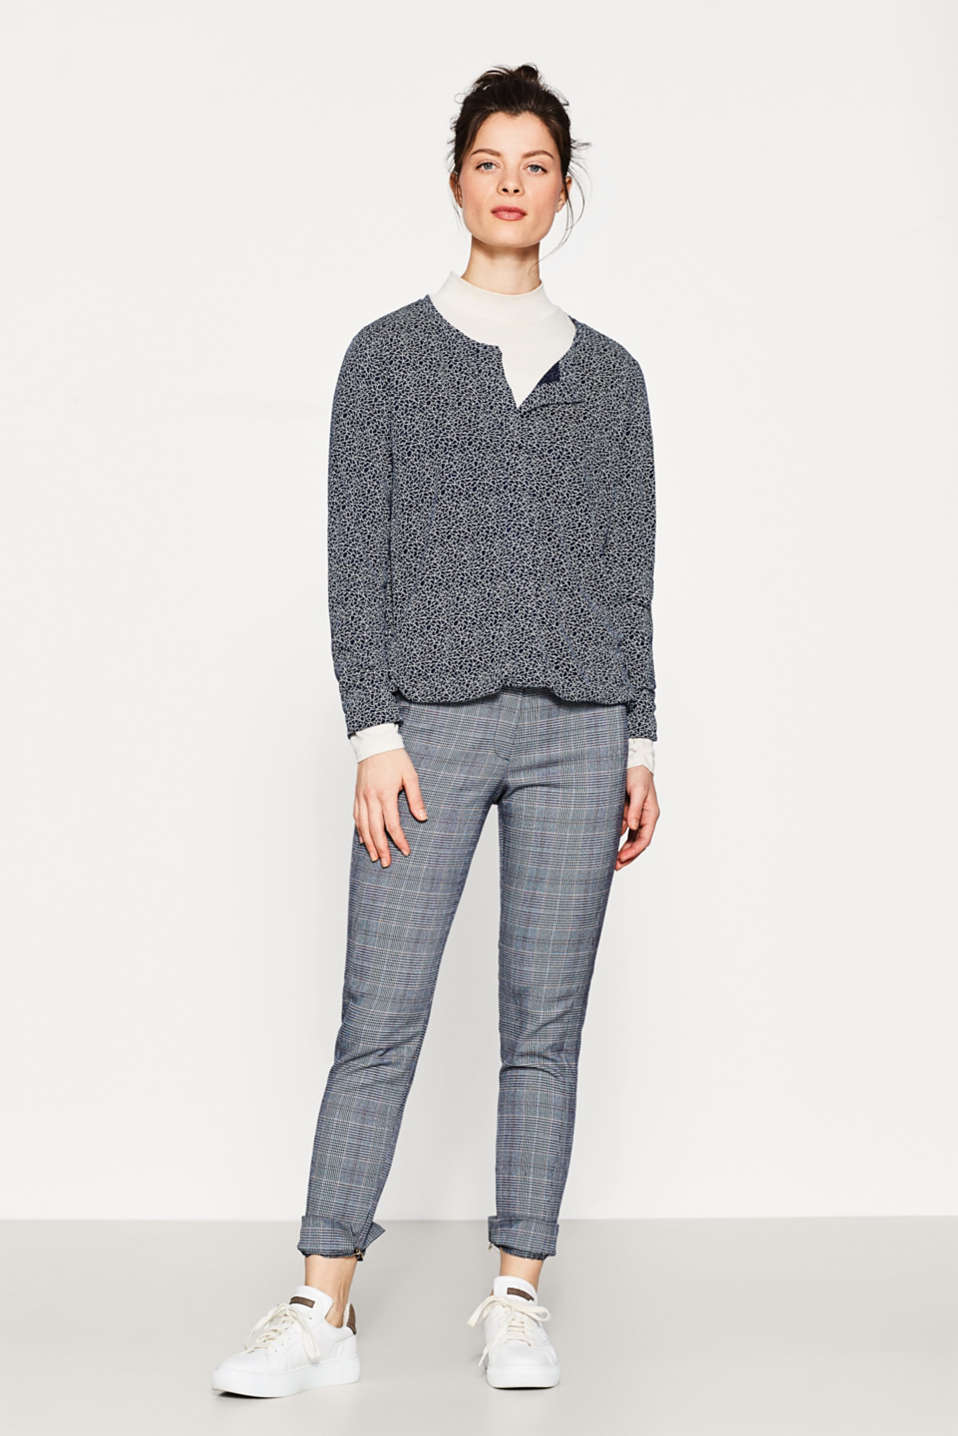 Esprit - Flowing Henley long sleeve with a print